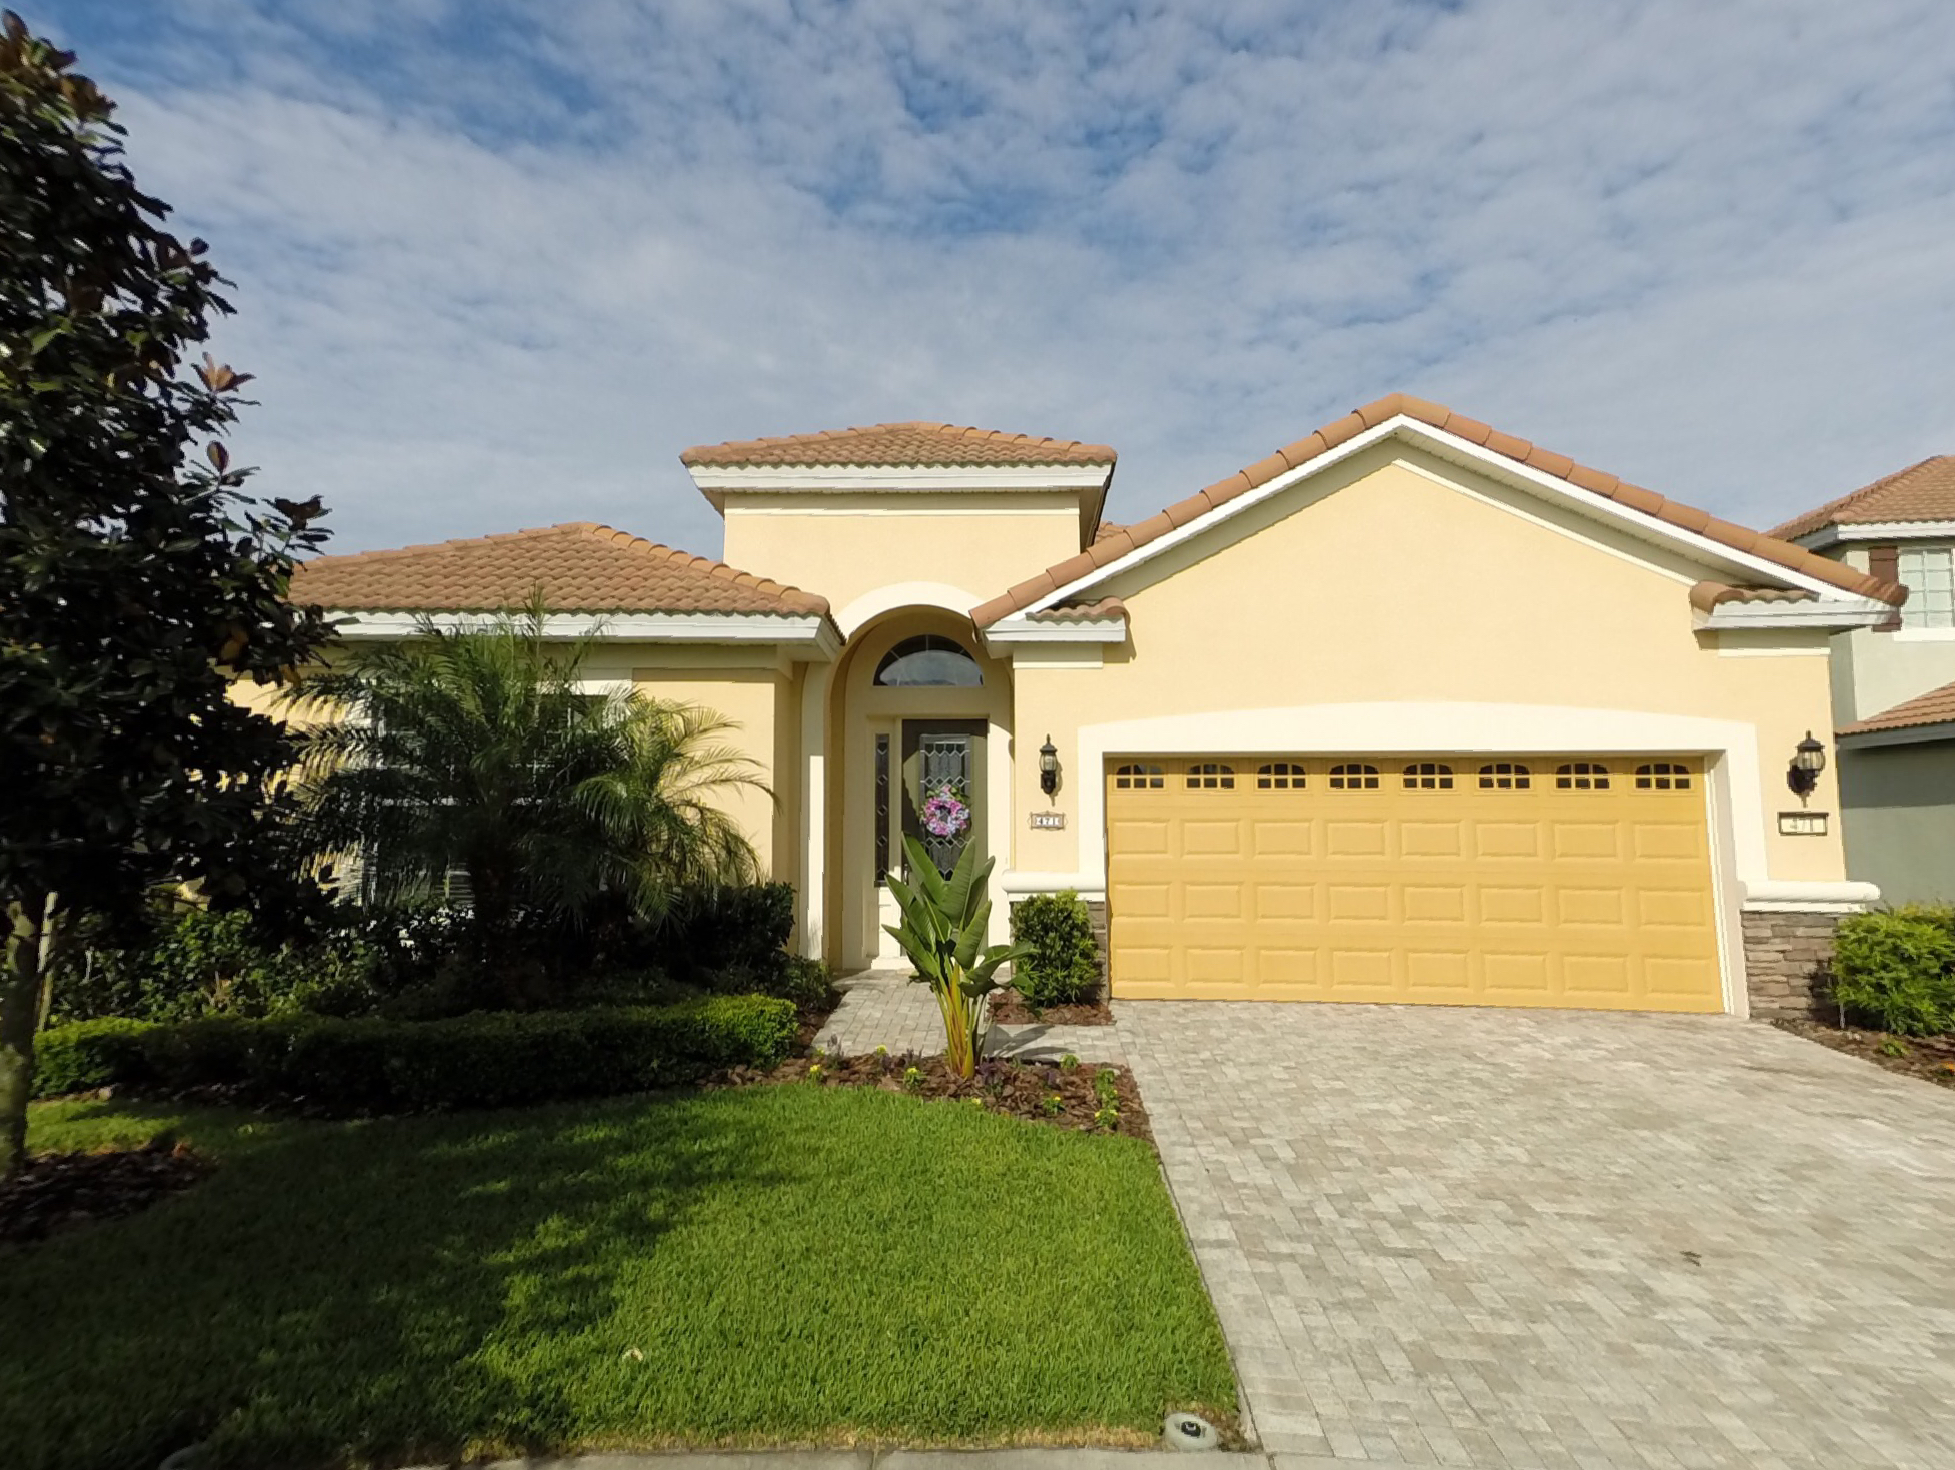 ... New Homes Winter Garden Florida, And Much More Below. Tags: ...